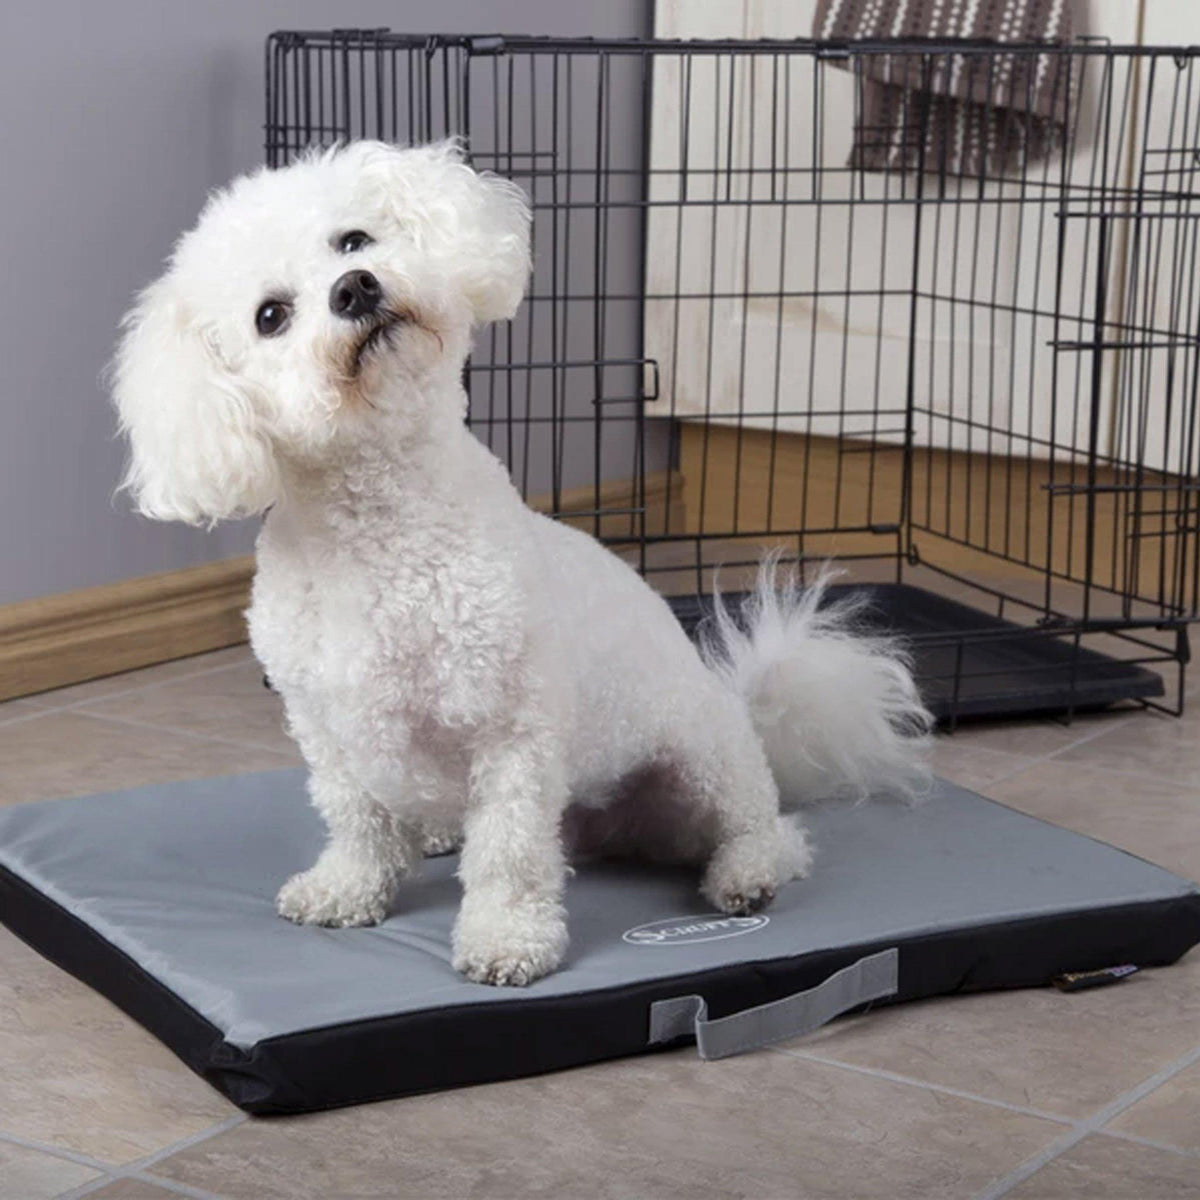 Expedition Kennel/Crate Mattress - comfypet